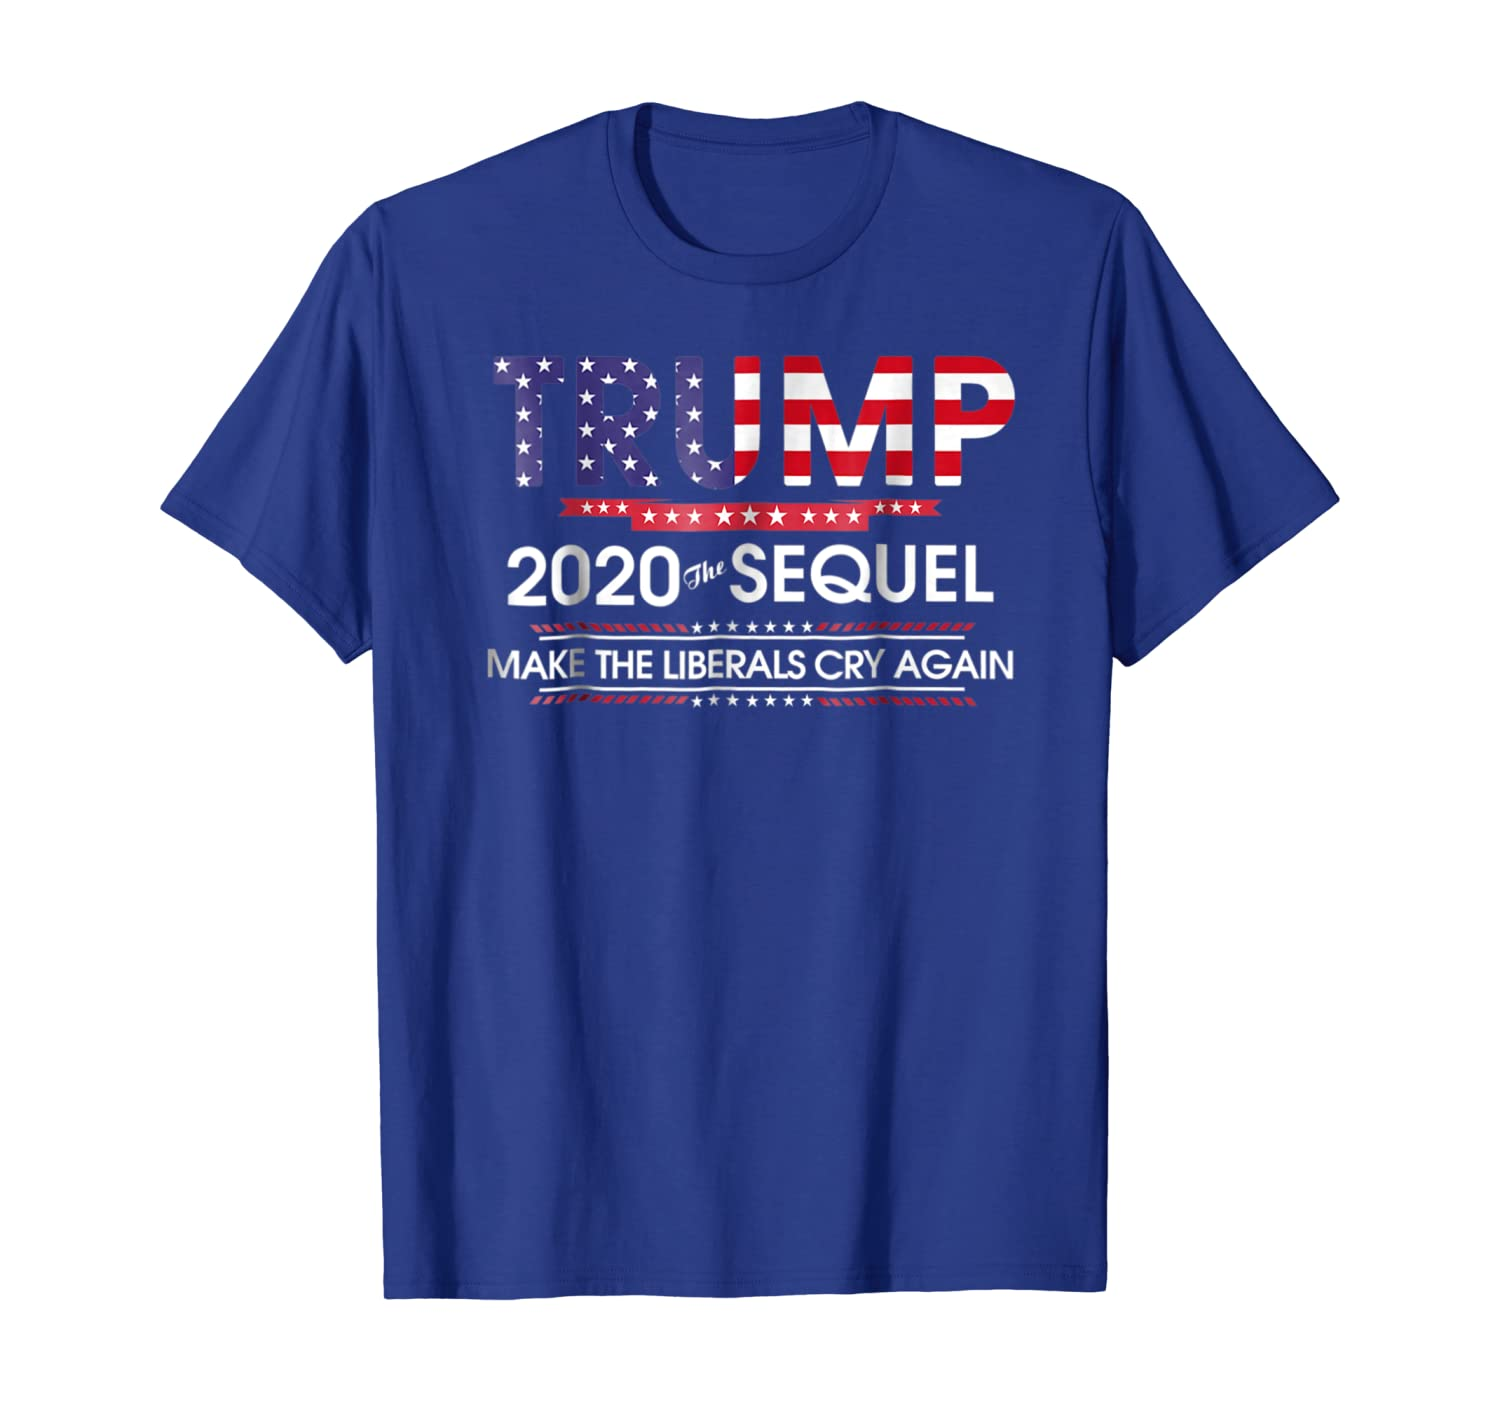 Trump 2020 The Sequel Make Liberals Cry Again Tshirt Unisex Tshirt